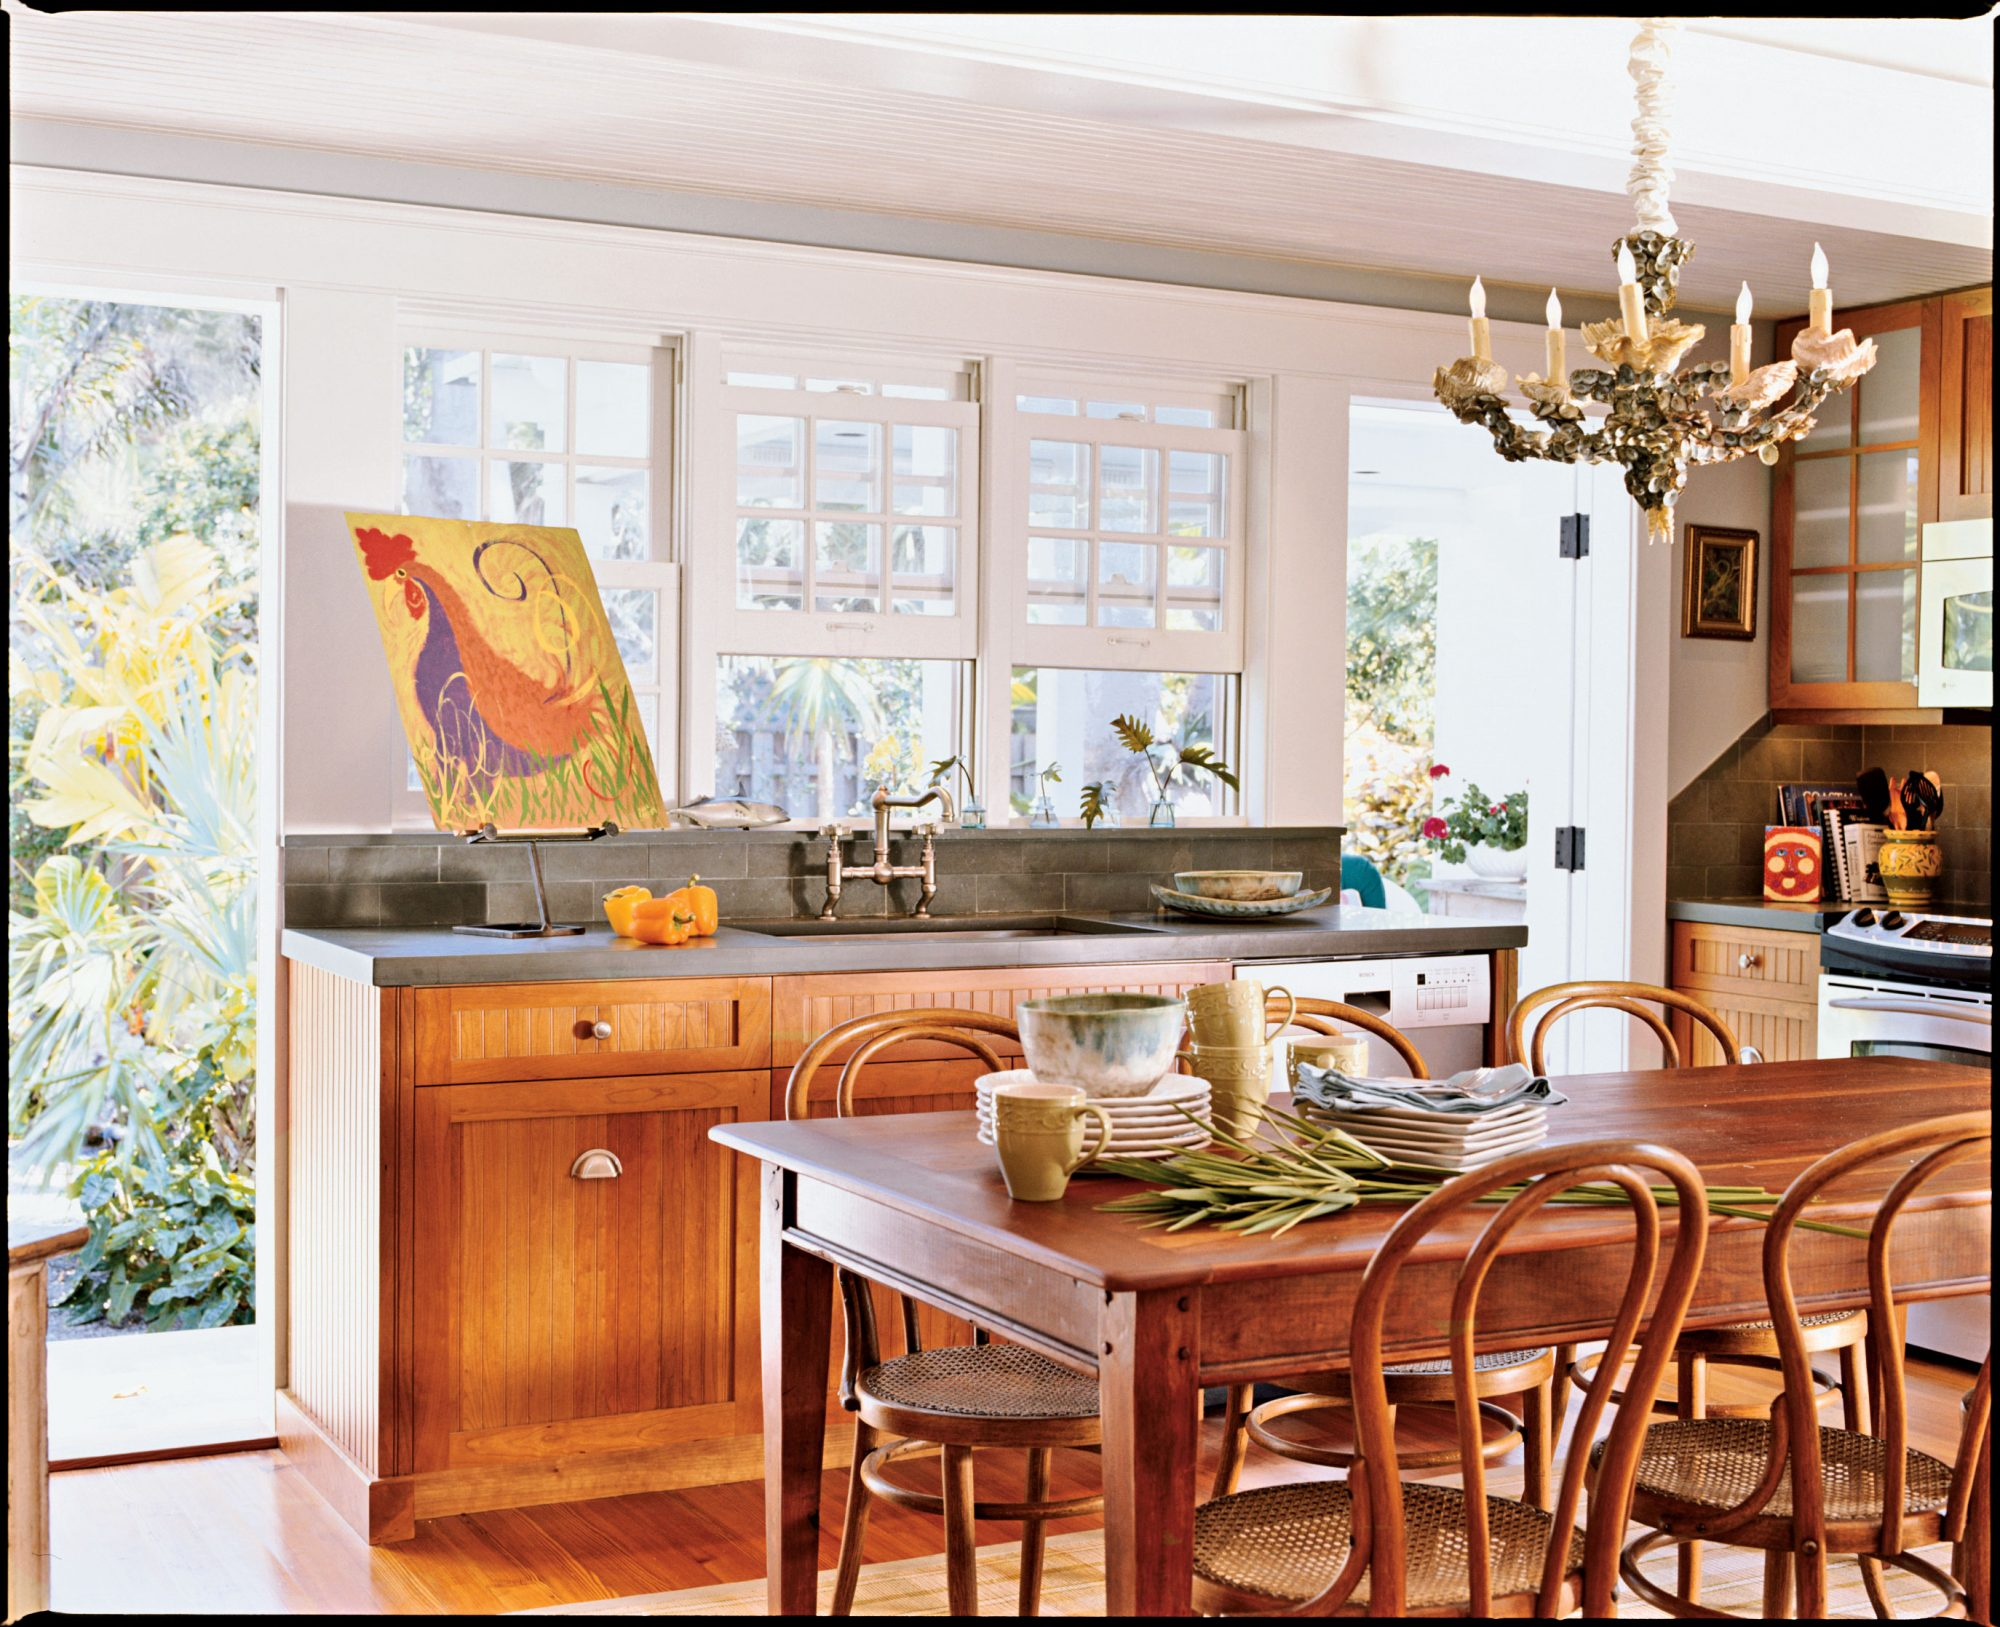 In the kitchen, a farm table and cherry cabinetry underscore the home's casual feel. Doors and windows open to the pool area, making it an ideal home for outdoor entertaining.